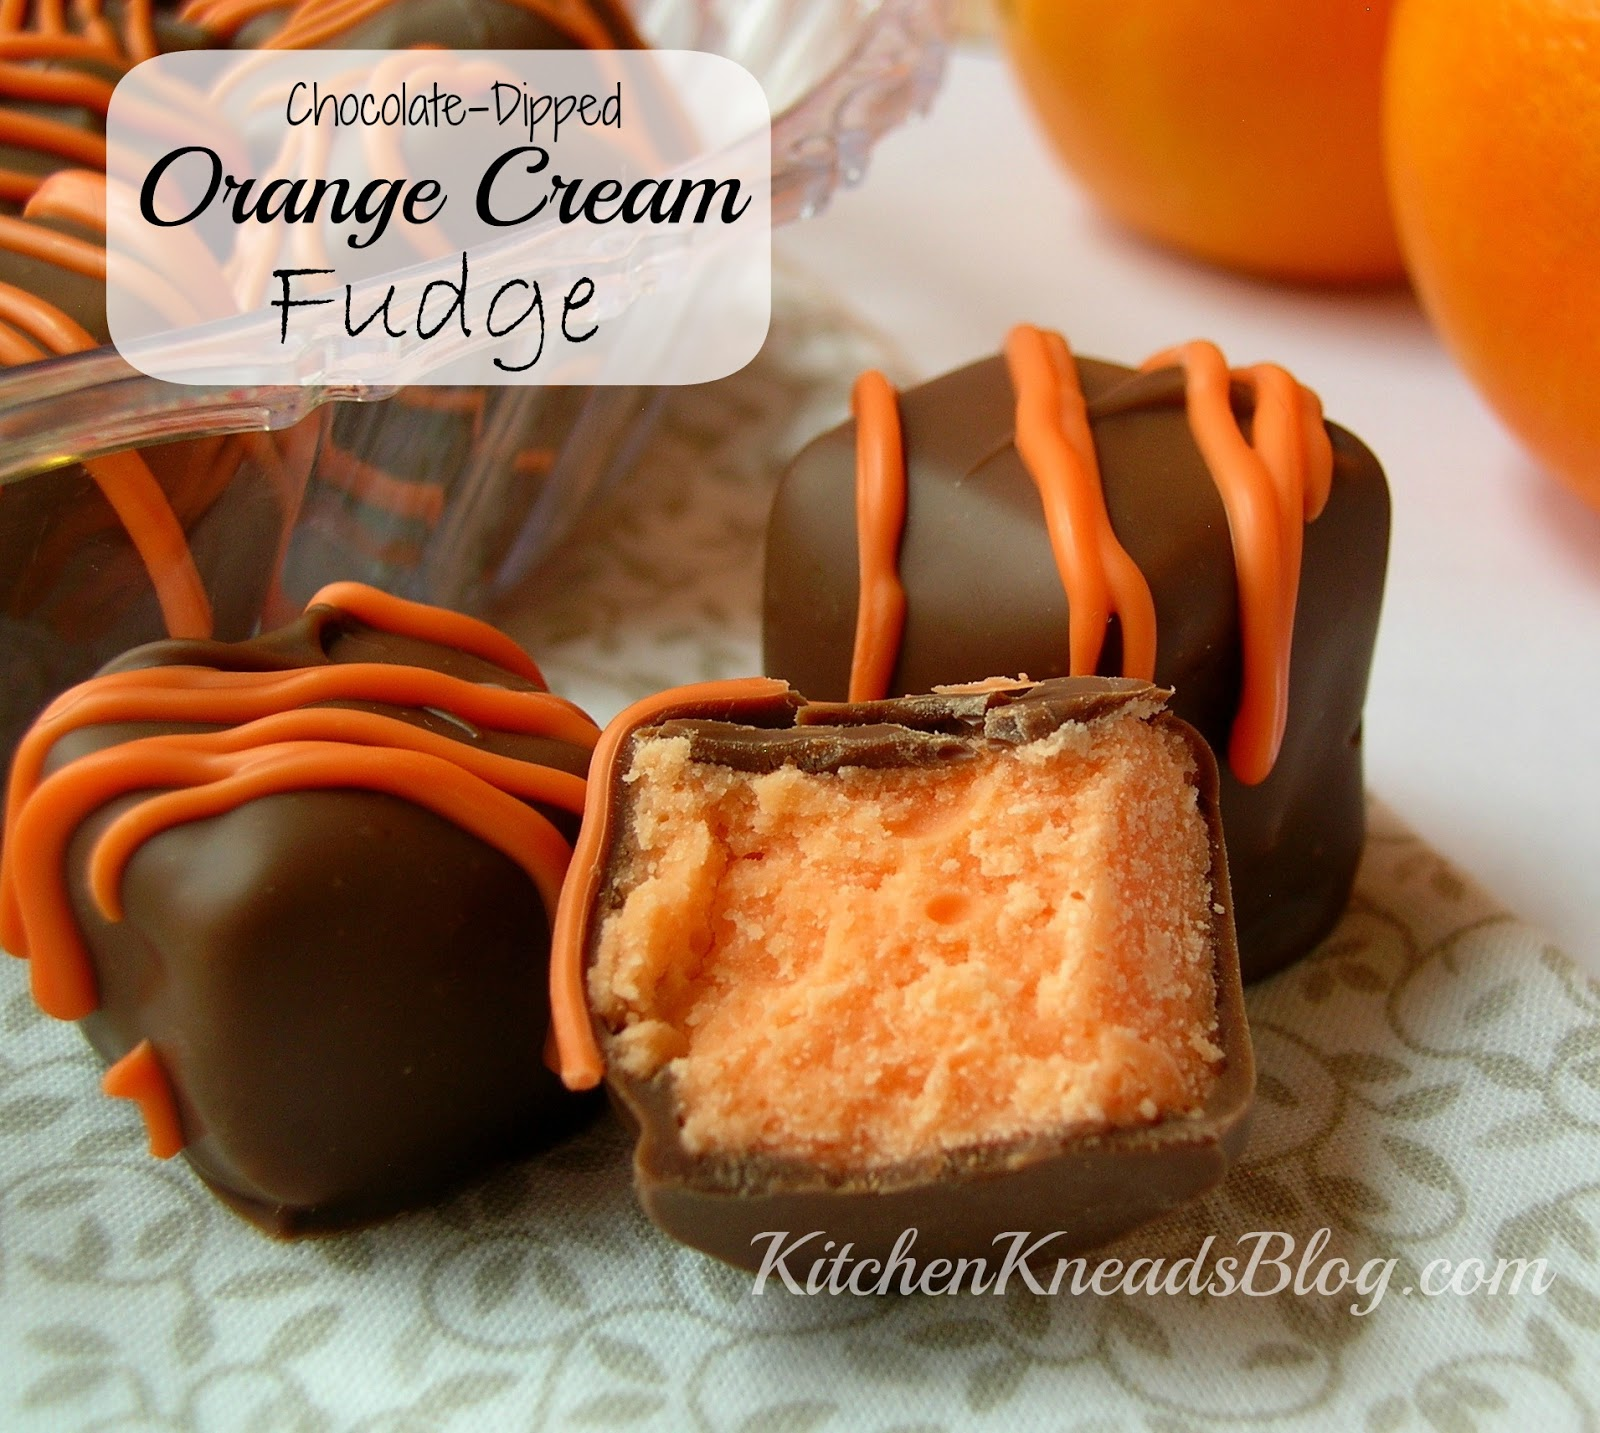 Chocolate-Dipped Orange Cream Fudge